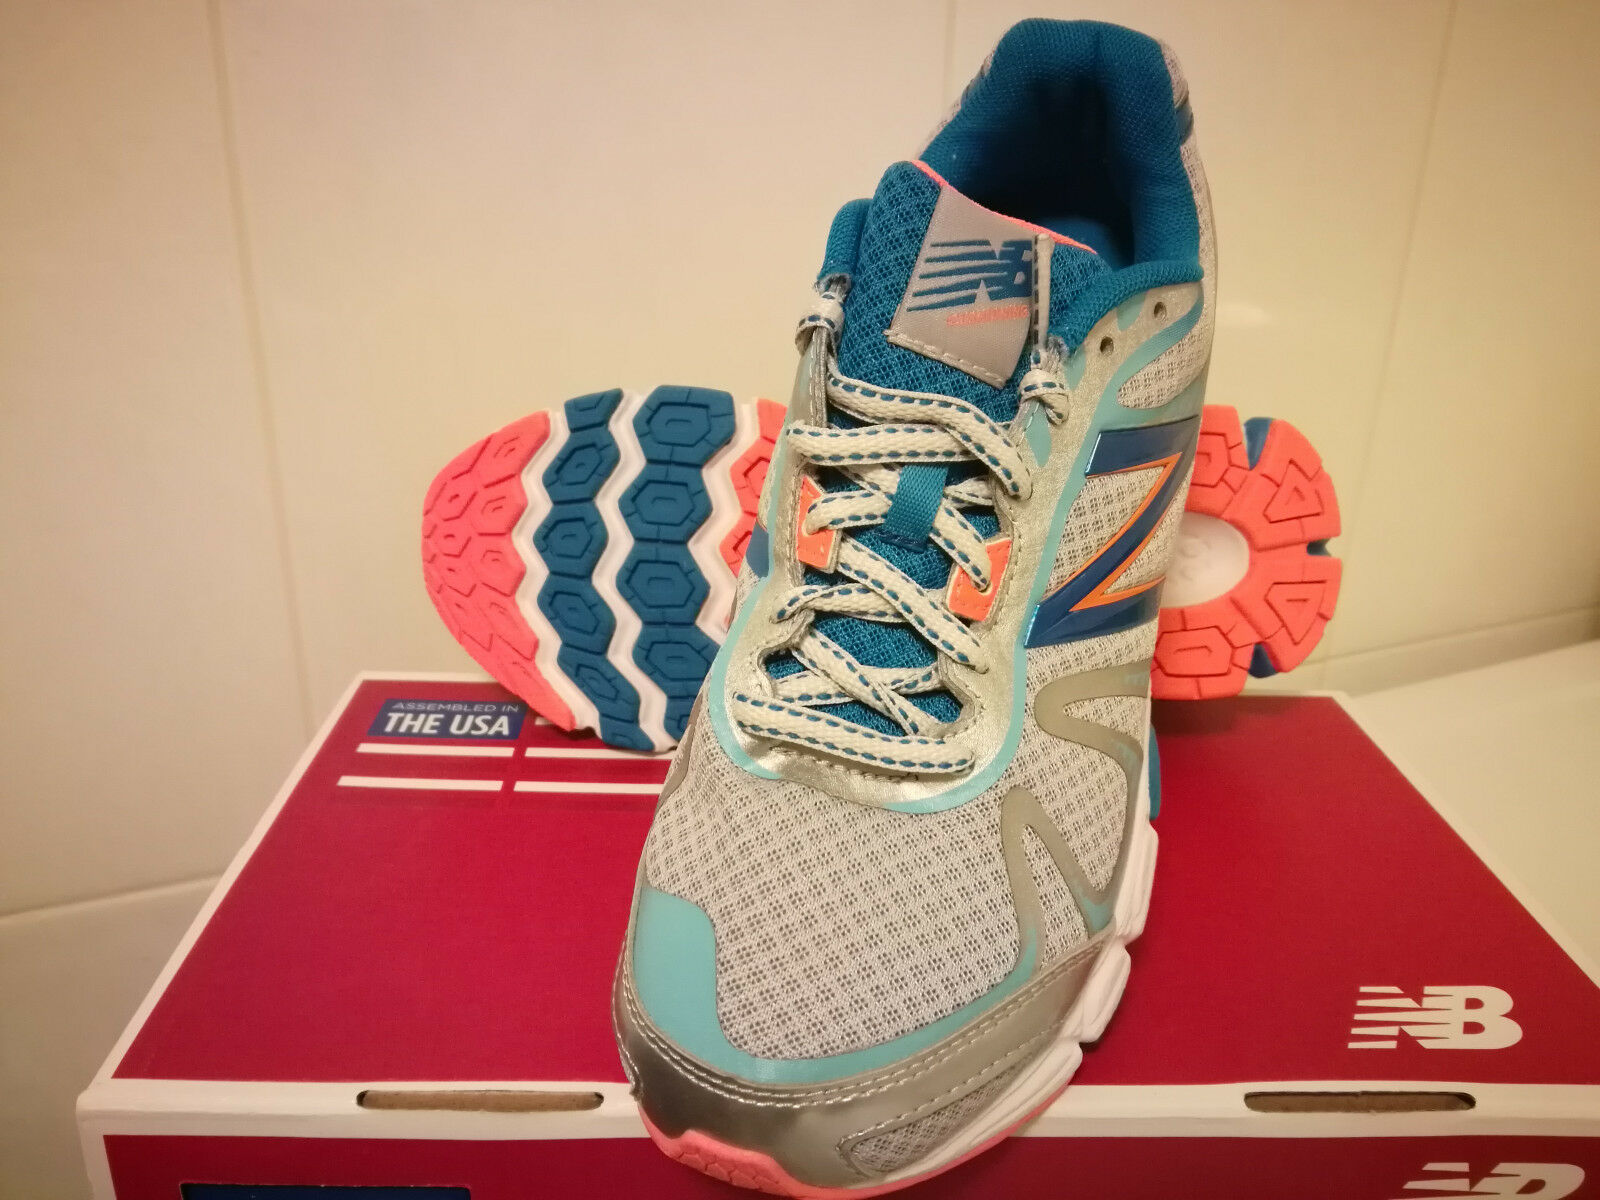 New Womens New Balance 780 v5 Running Sneakers Shoes - 6.5 D width